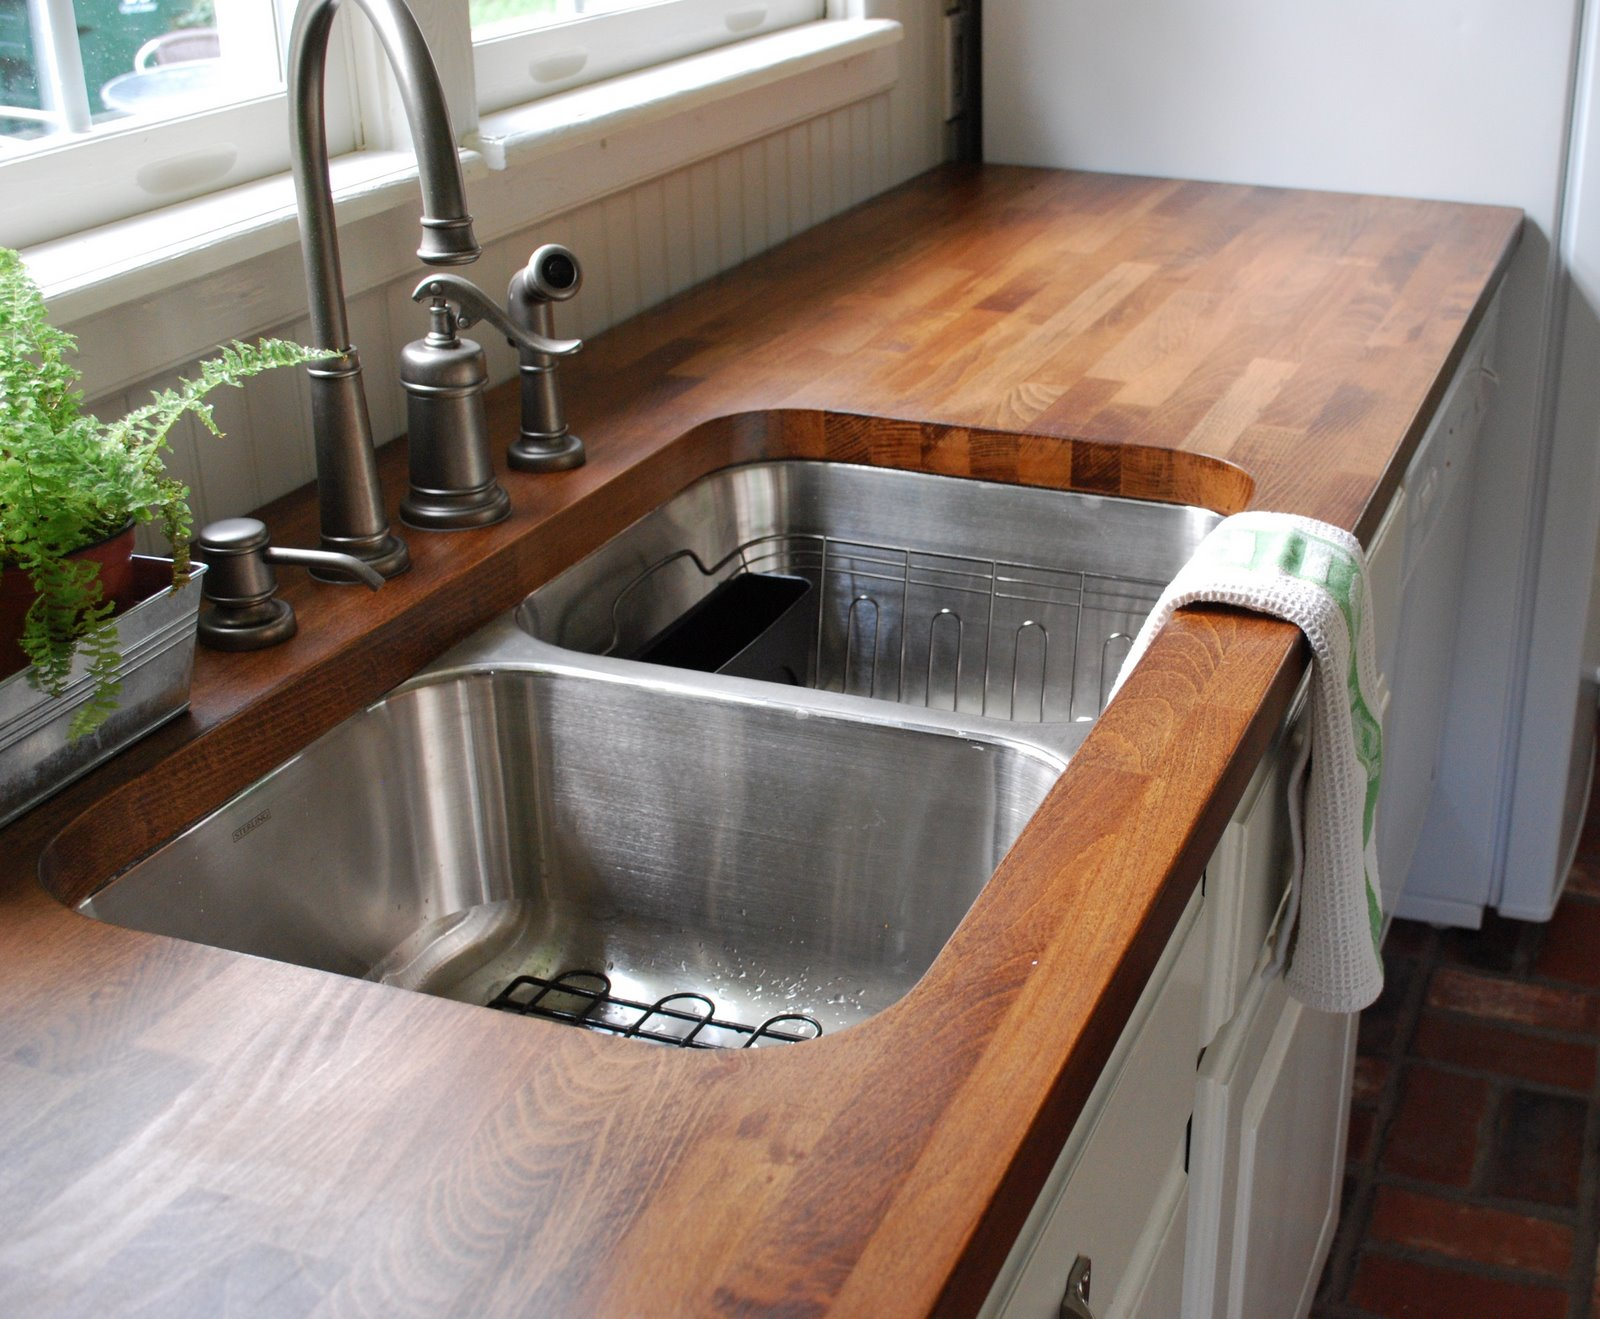 Uncategorized Wooden Kitchen Countertops charming and classy wooden kitchen countertops the elegance of dark wood